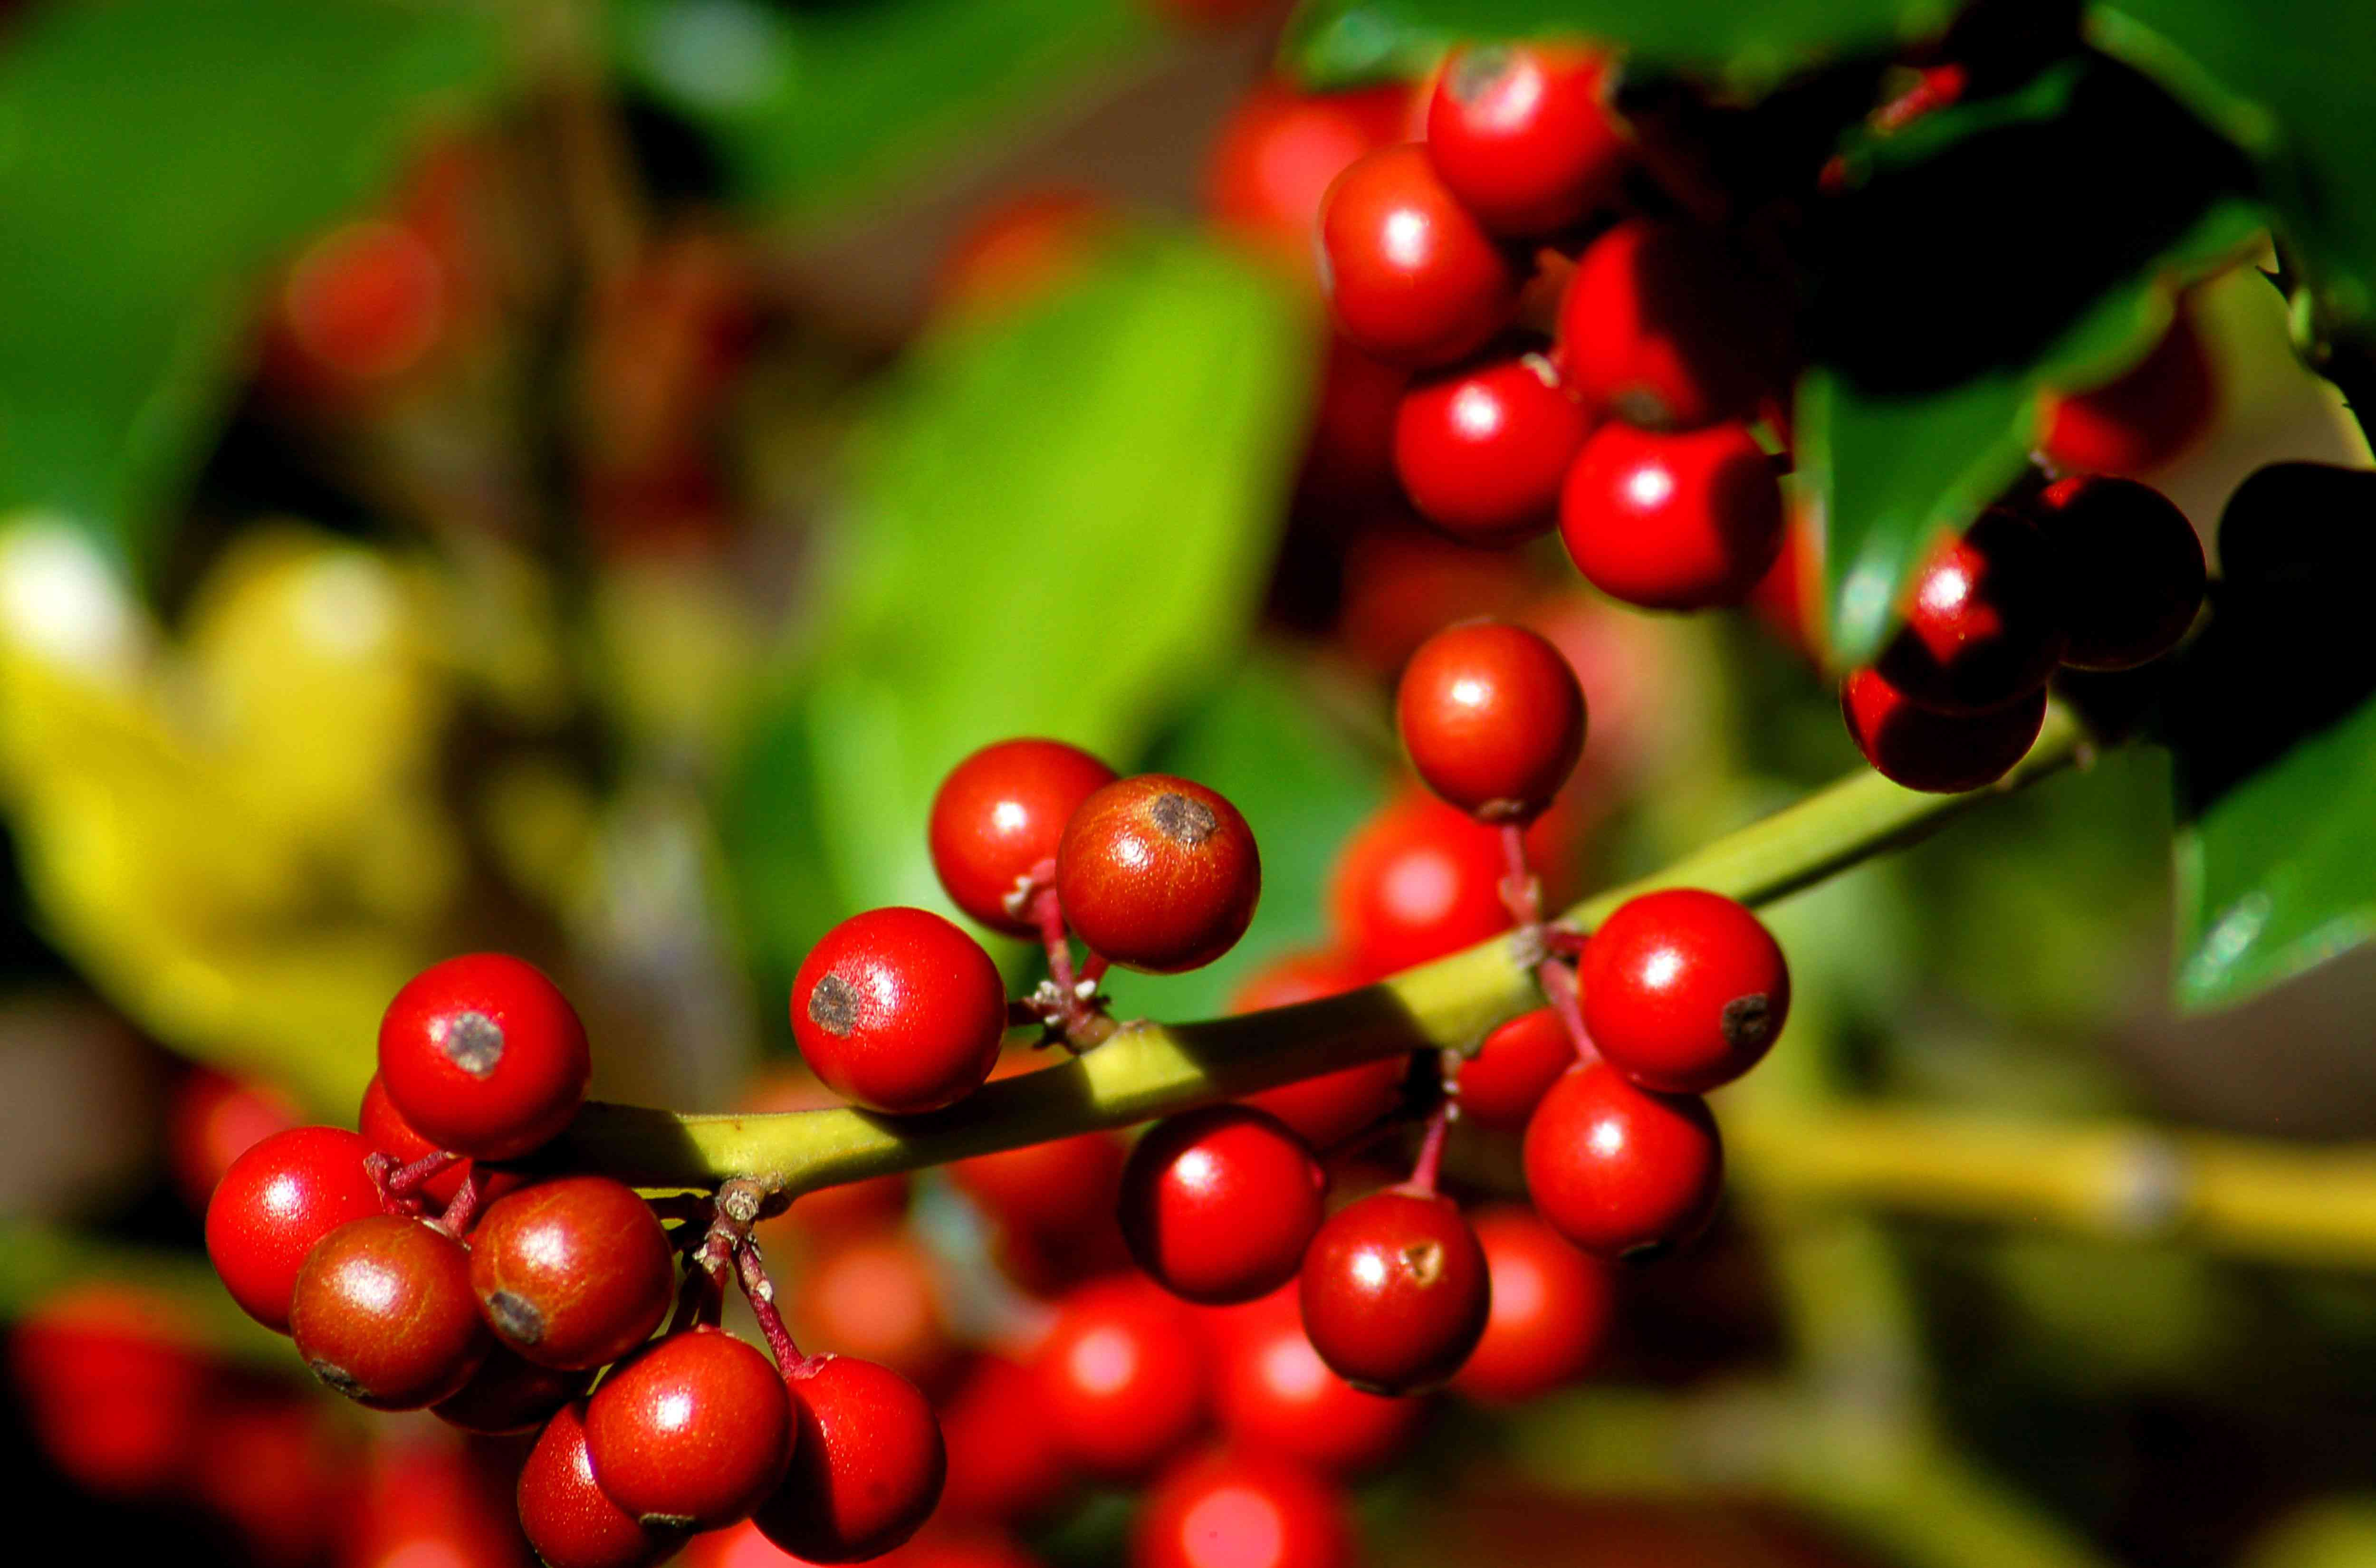 Blue holly shrub branch with bright red berries closeup